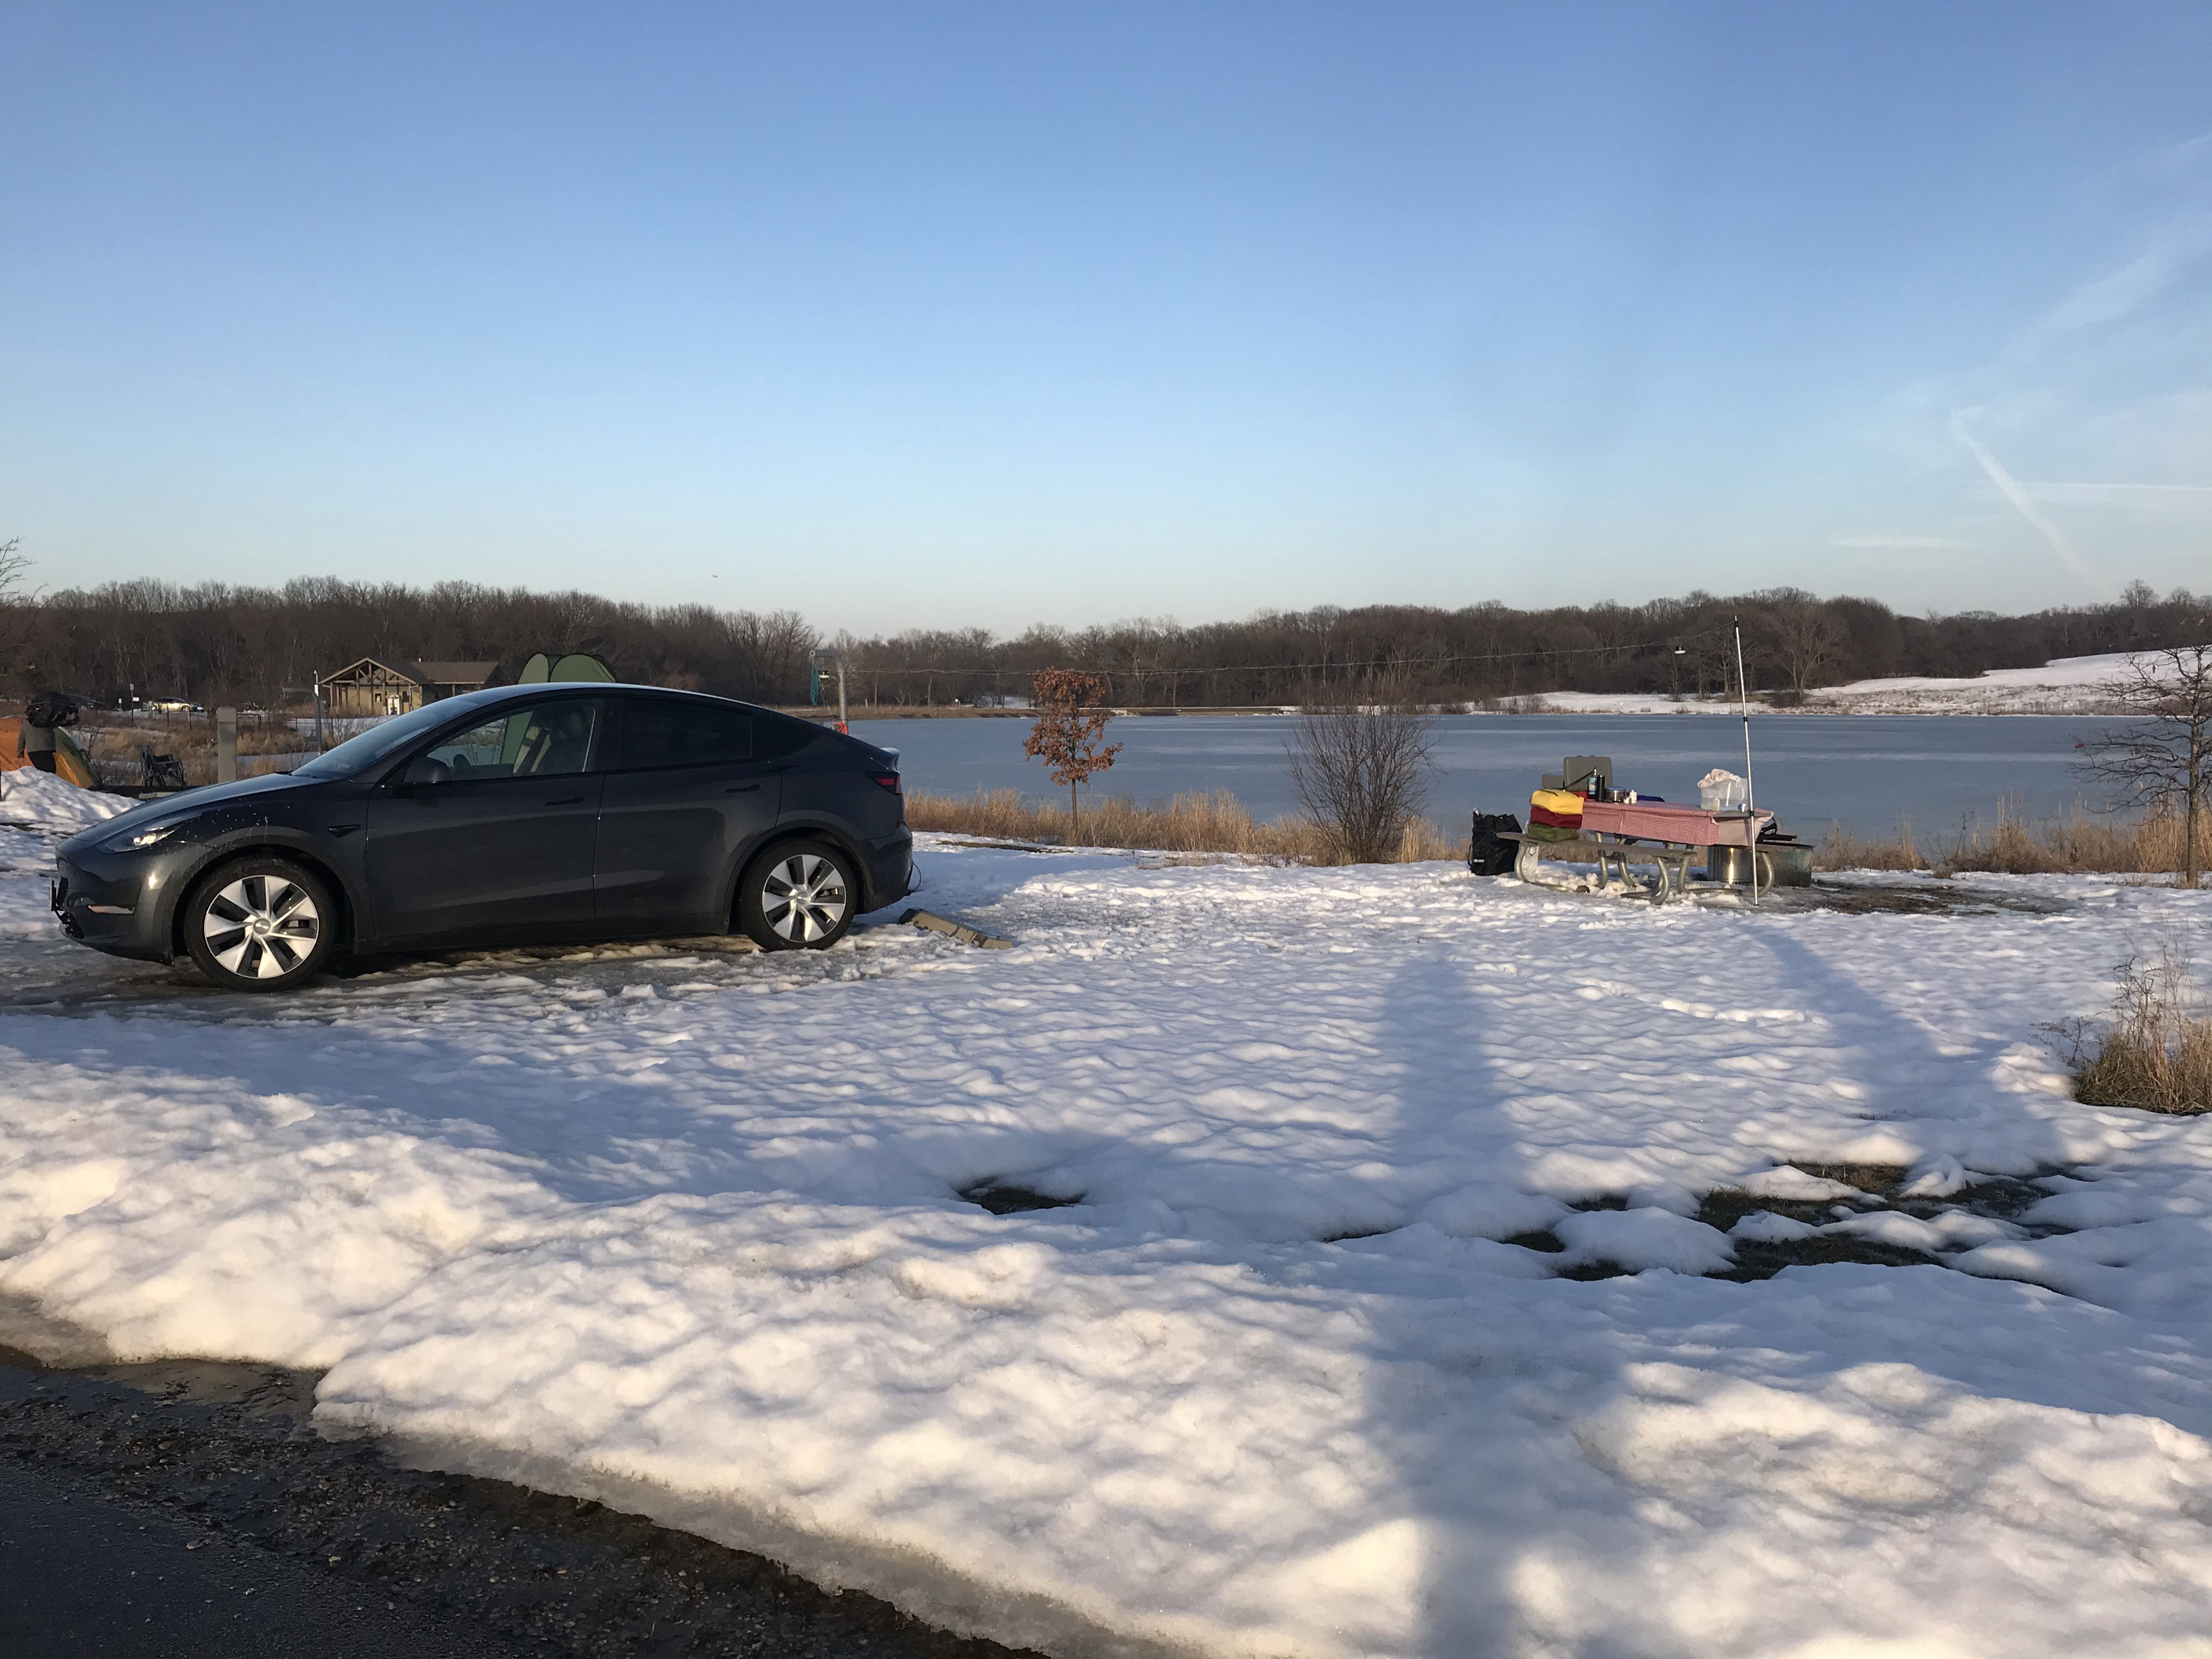 tesla model sits on snow ground in campground near lake